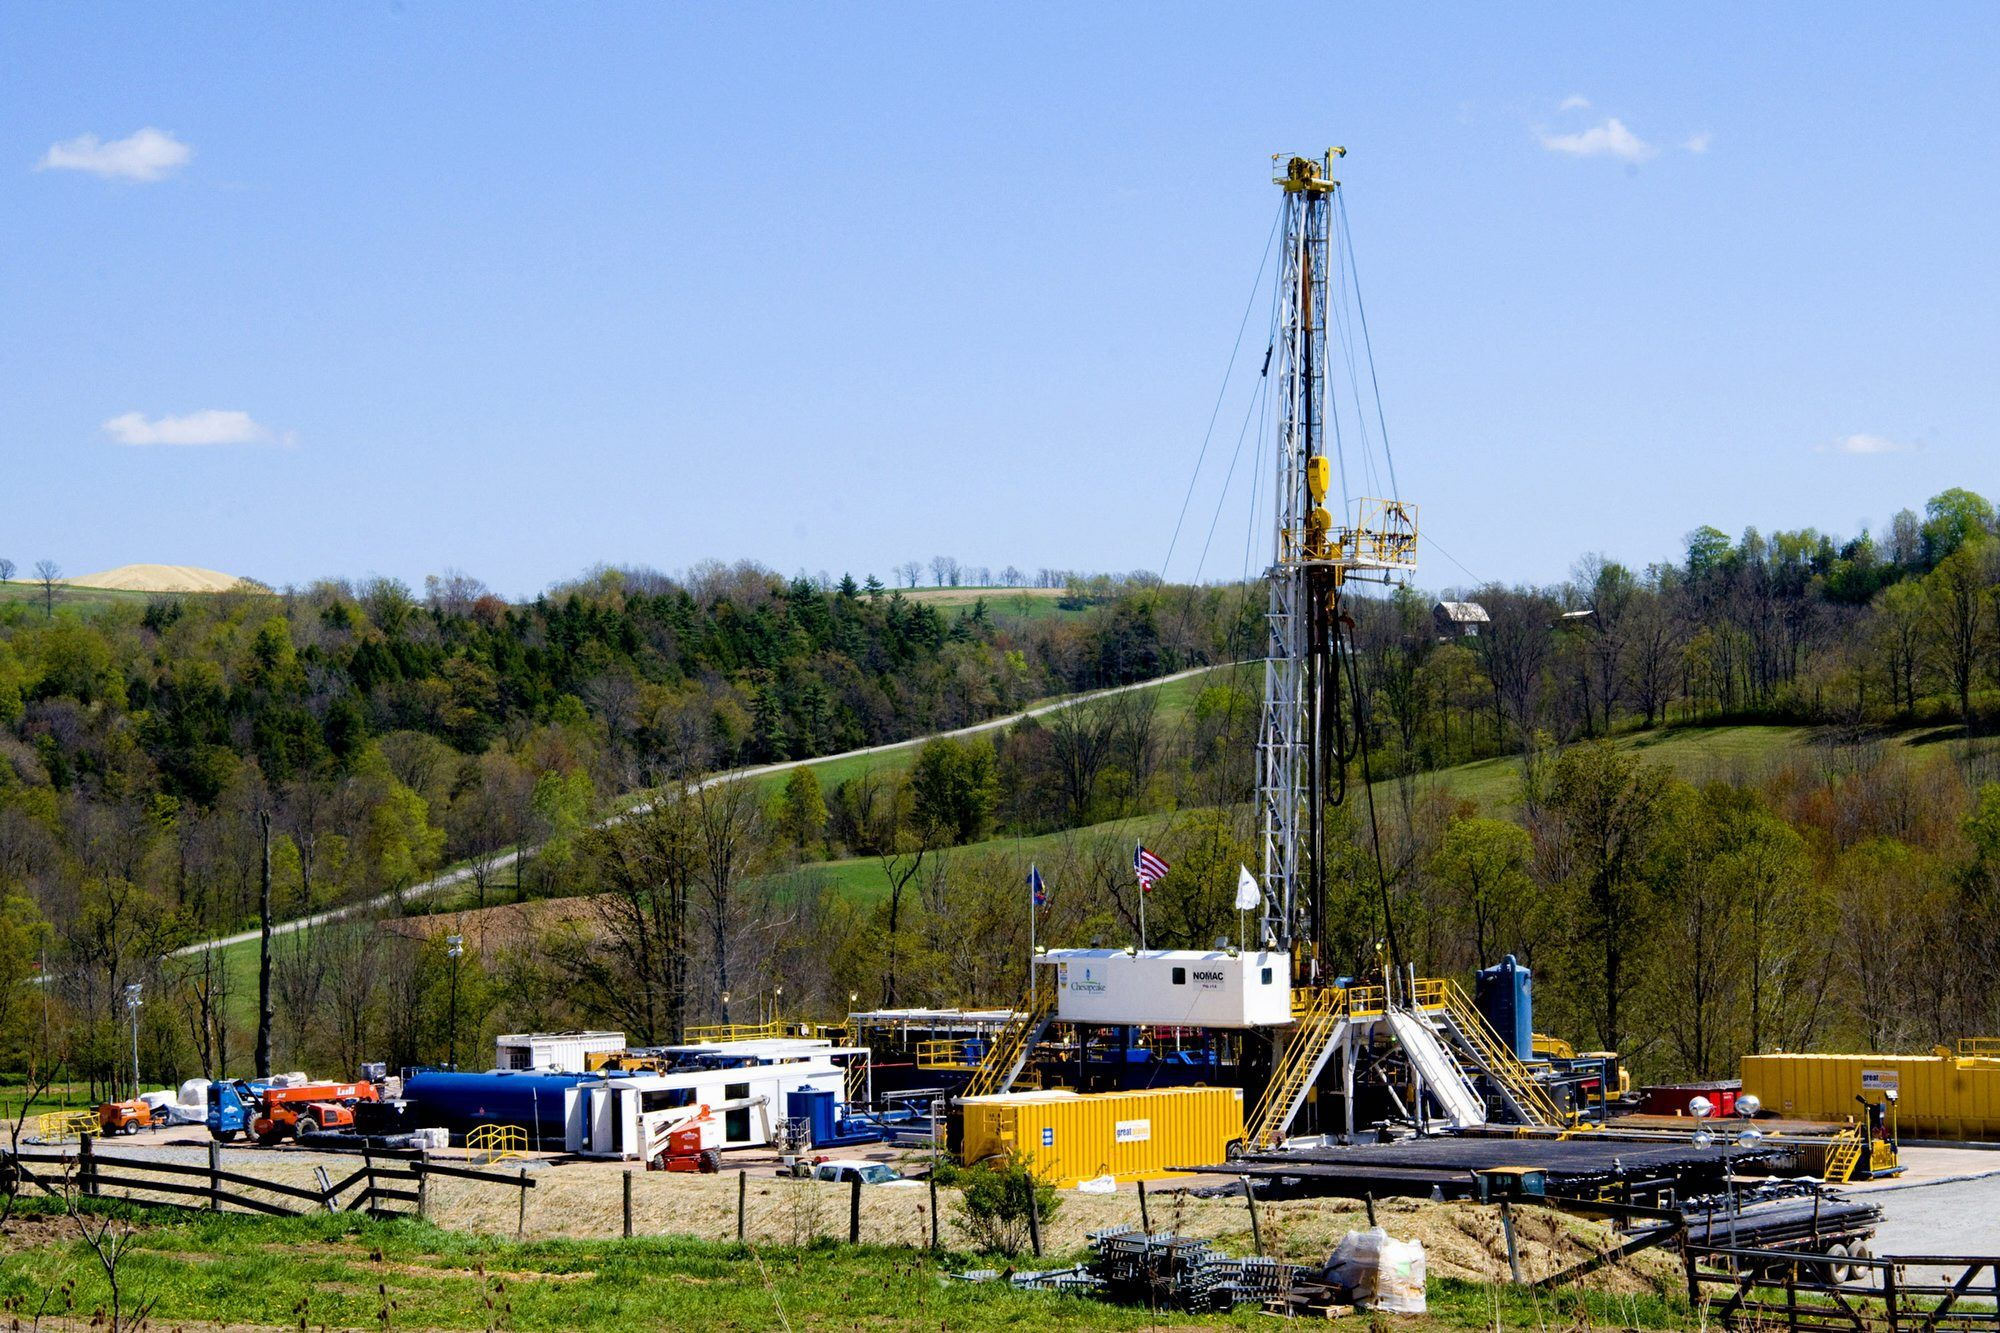 Methane study, EPA debunk claims of water pollution, climate change from fracking